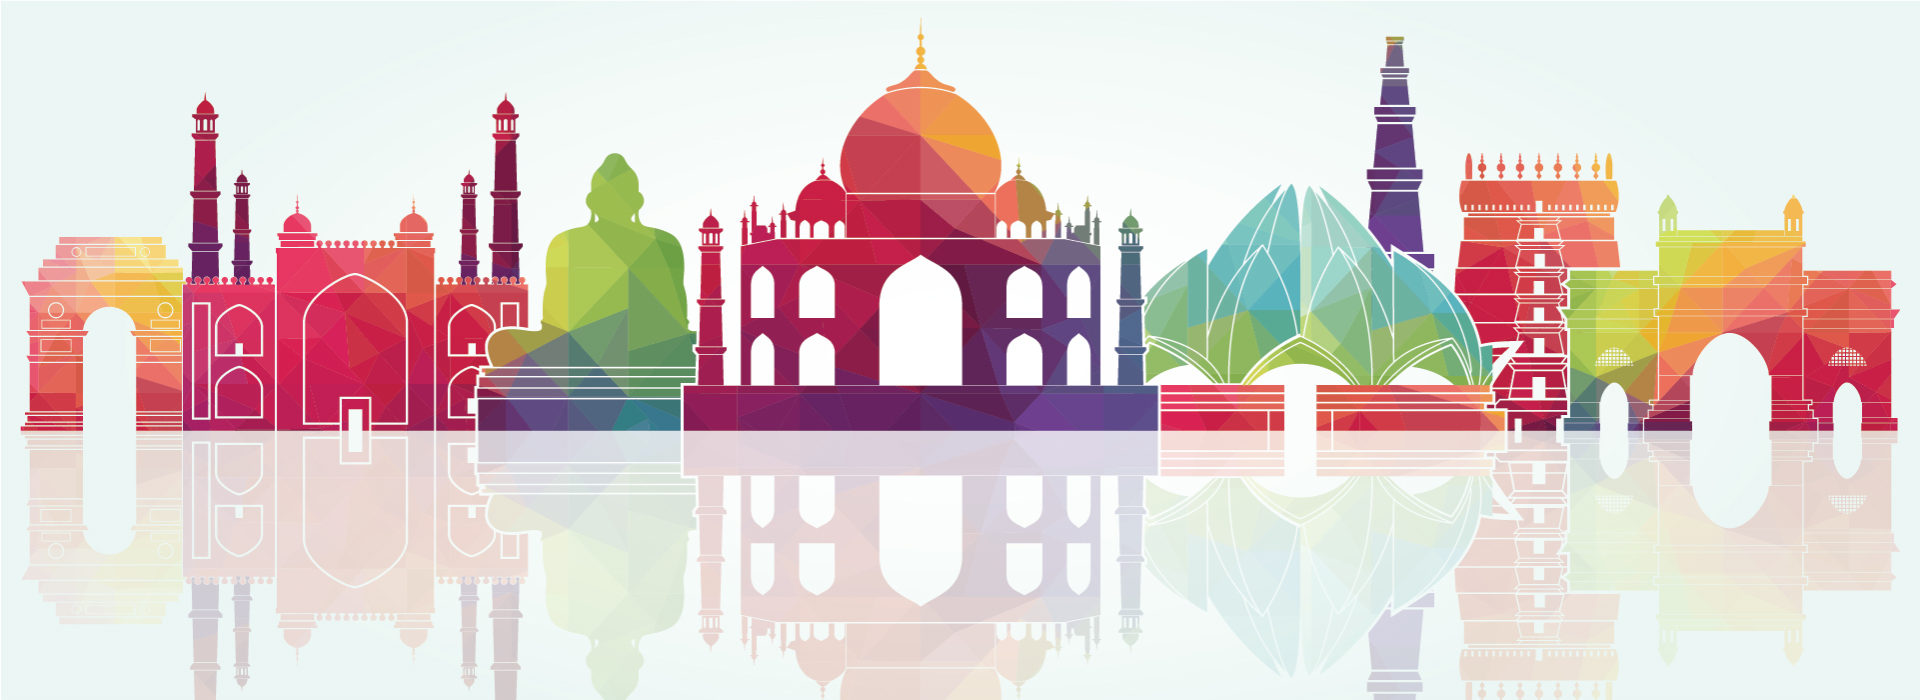 Tourism in india clipart jpg Dental Tourism in Delhi India | Health Tourism India jpg